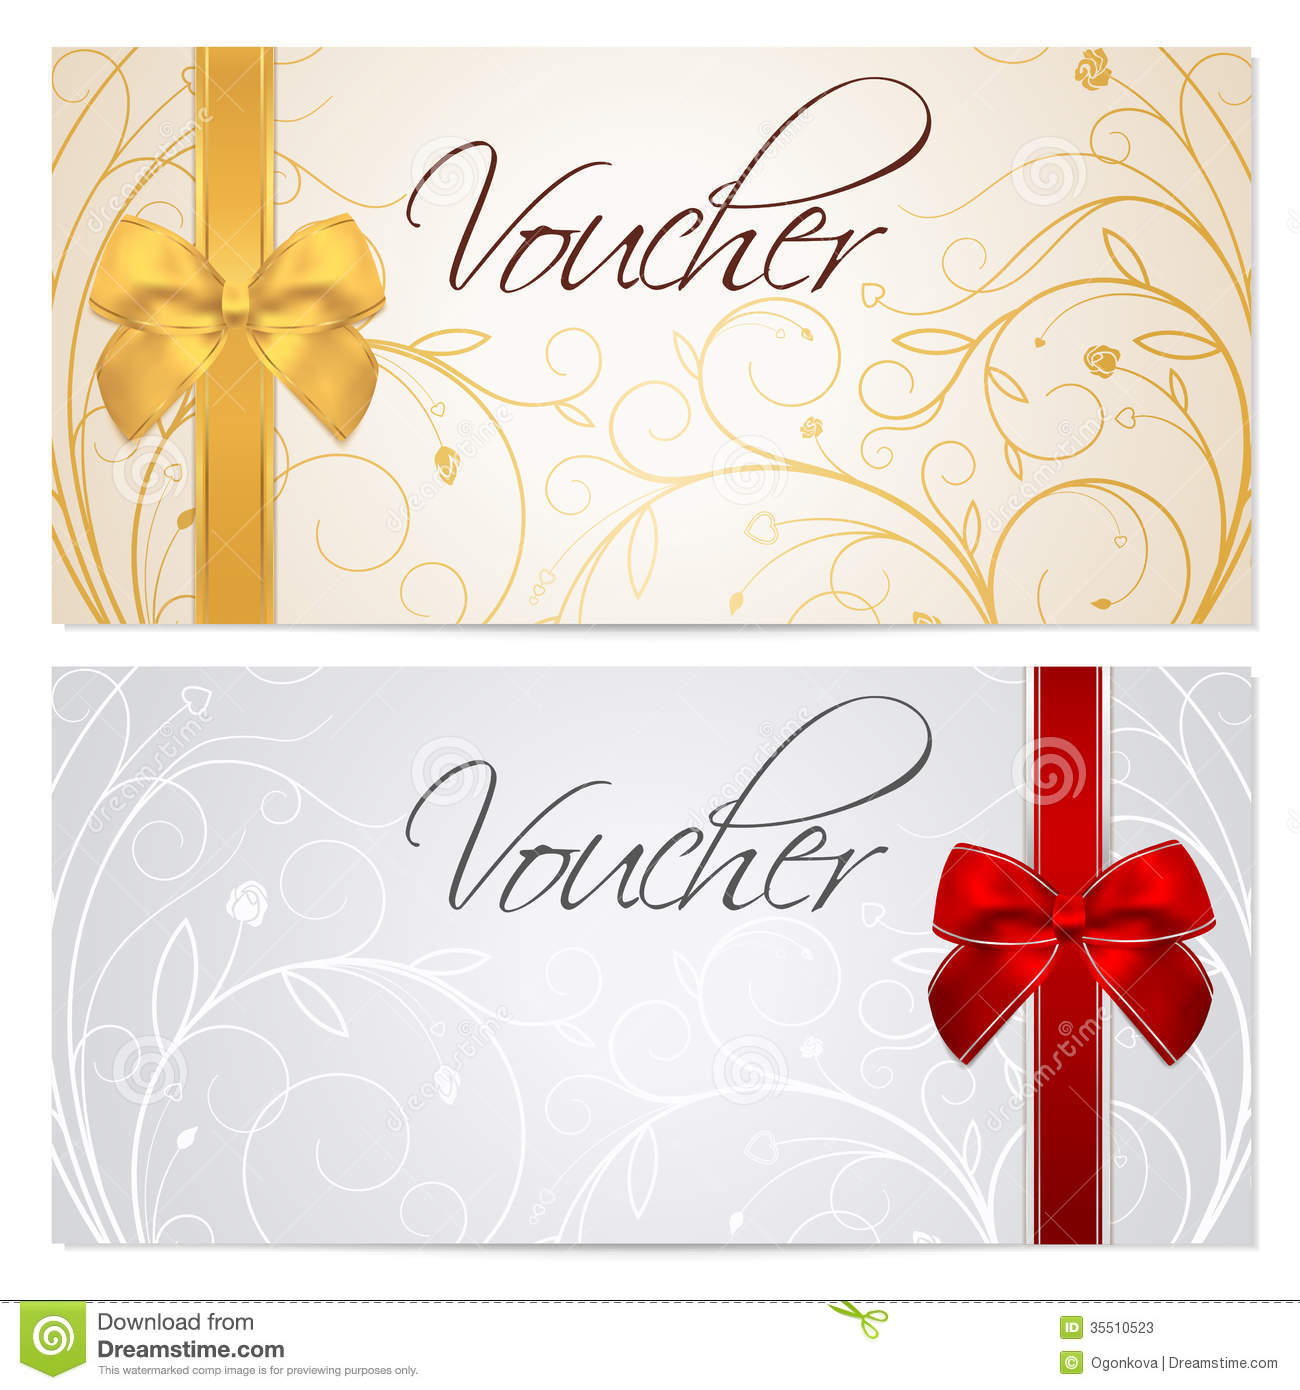 Gift Voucher Template Free Download Voucher Gift Certificate Coupon Templatered B Stock Vector .